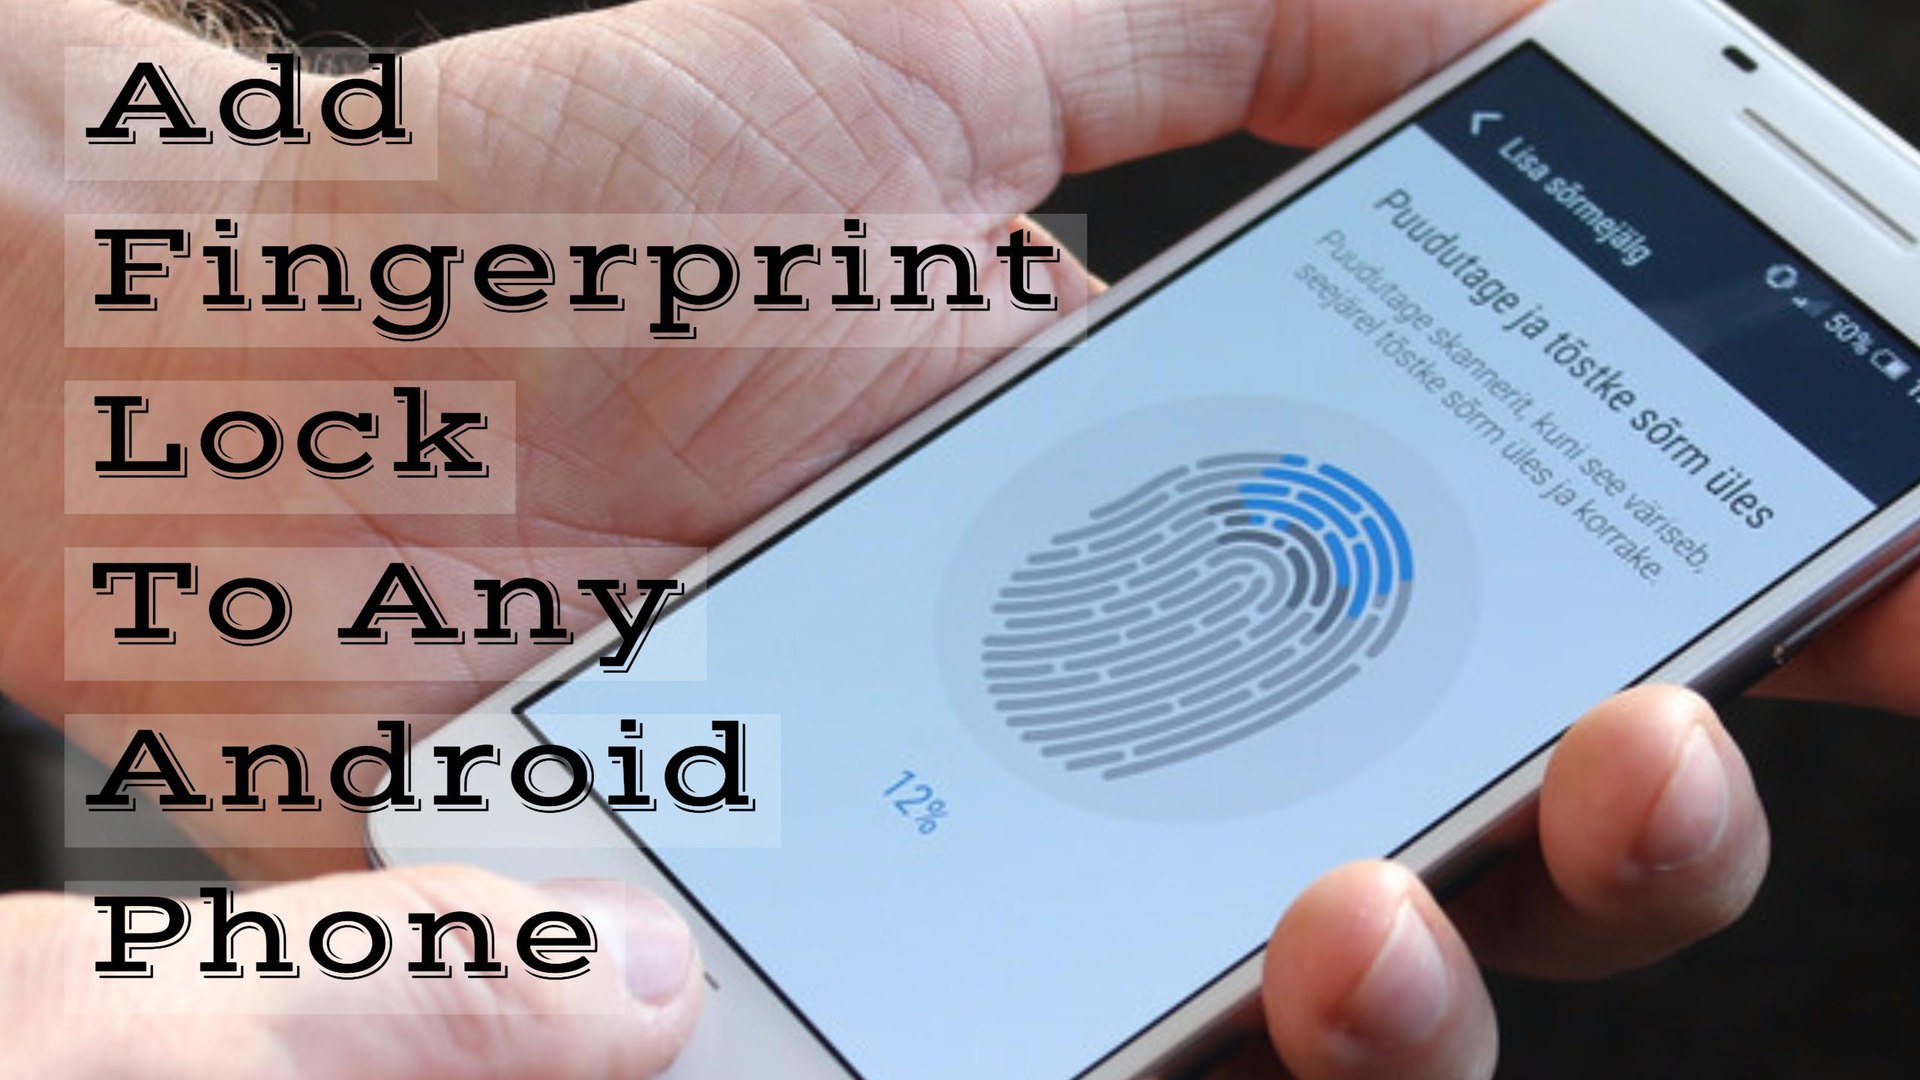 How To Add Fingerprint Lock To Any Android Phone 100% Working No Root HindiUrdu 2017